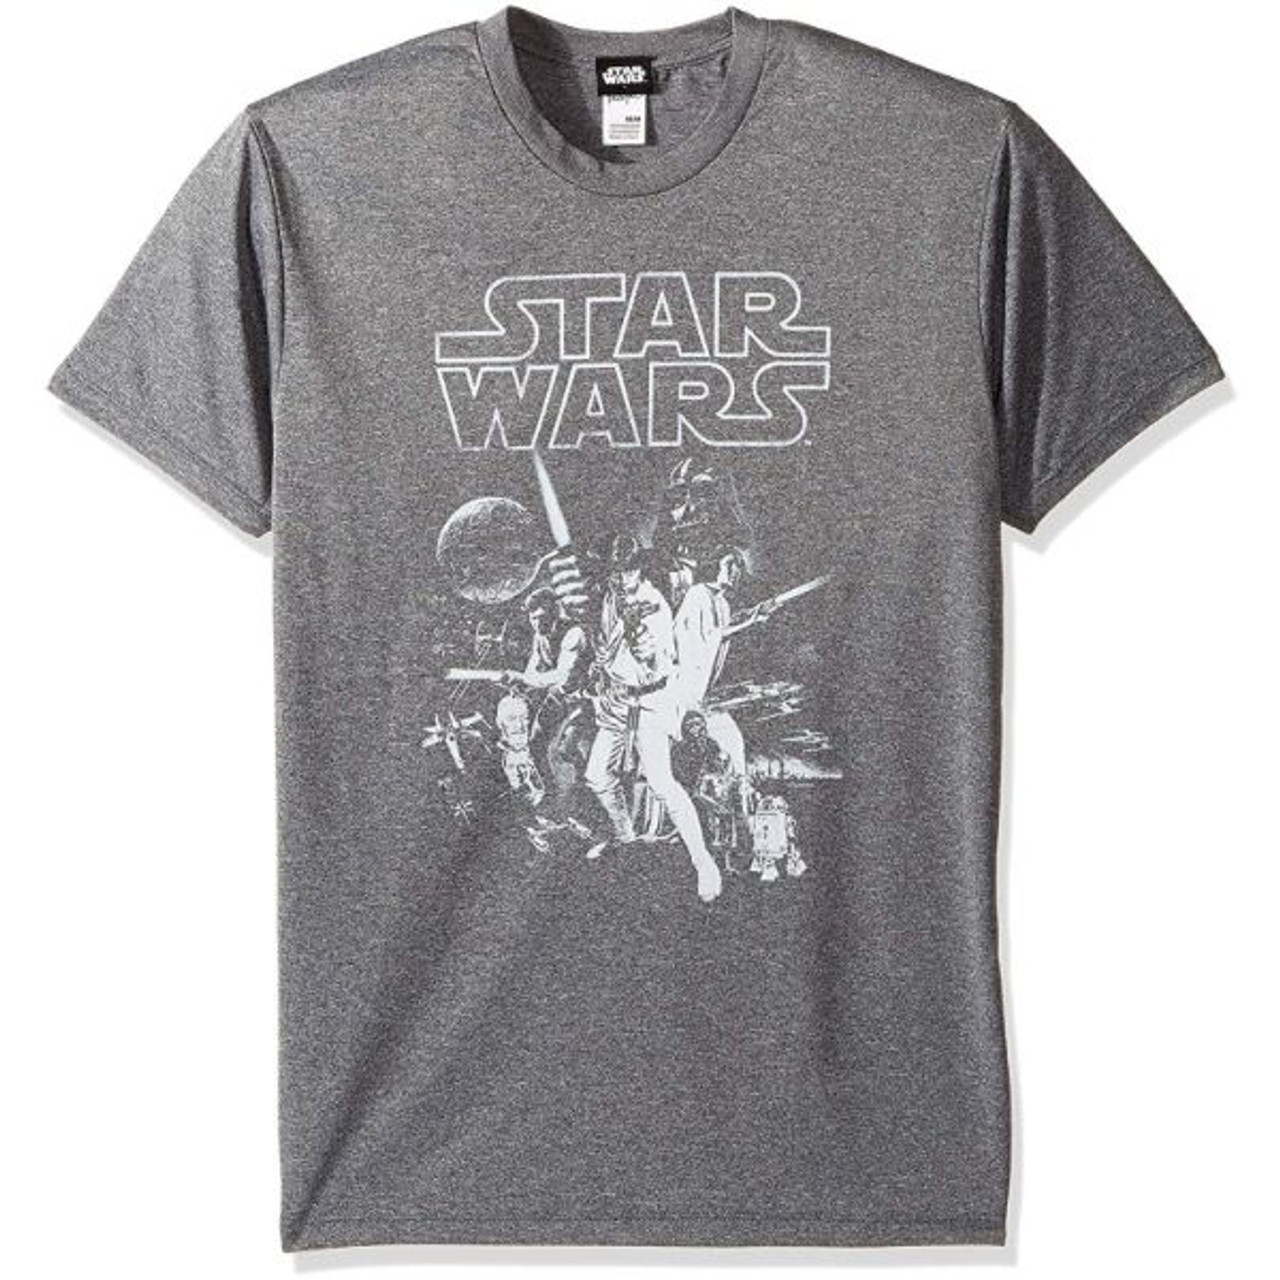 Star Wars Men's Official 'Poster' Design Performance Graphic Tee